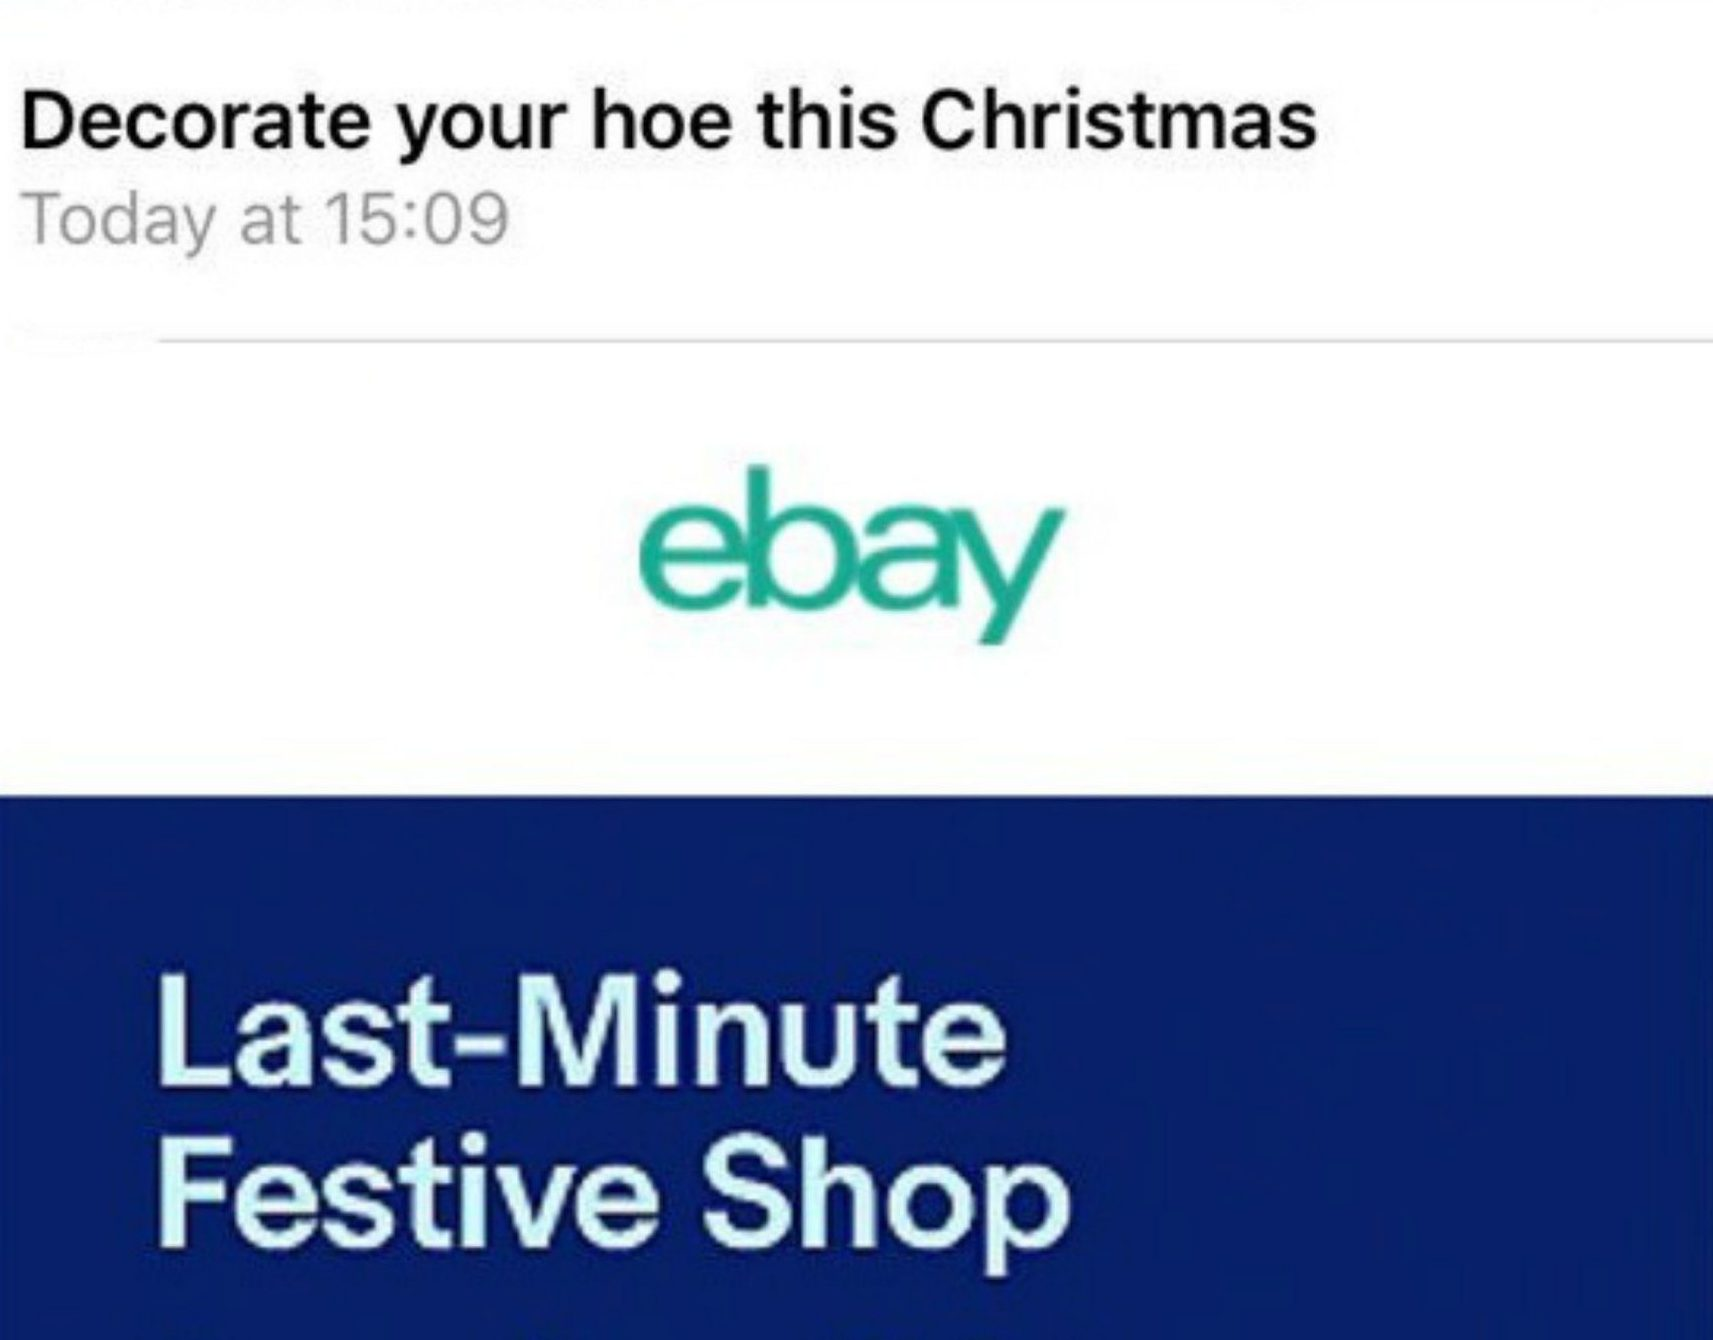 eBay just told customers to 'decorate your hoe this Christmas'